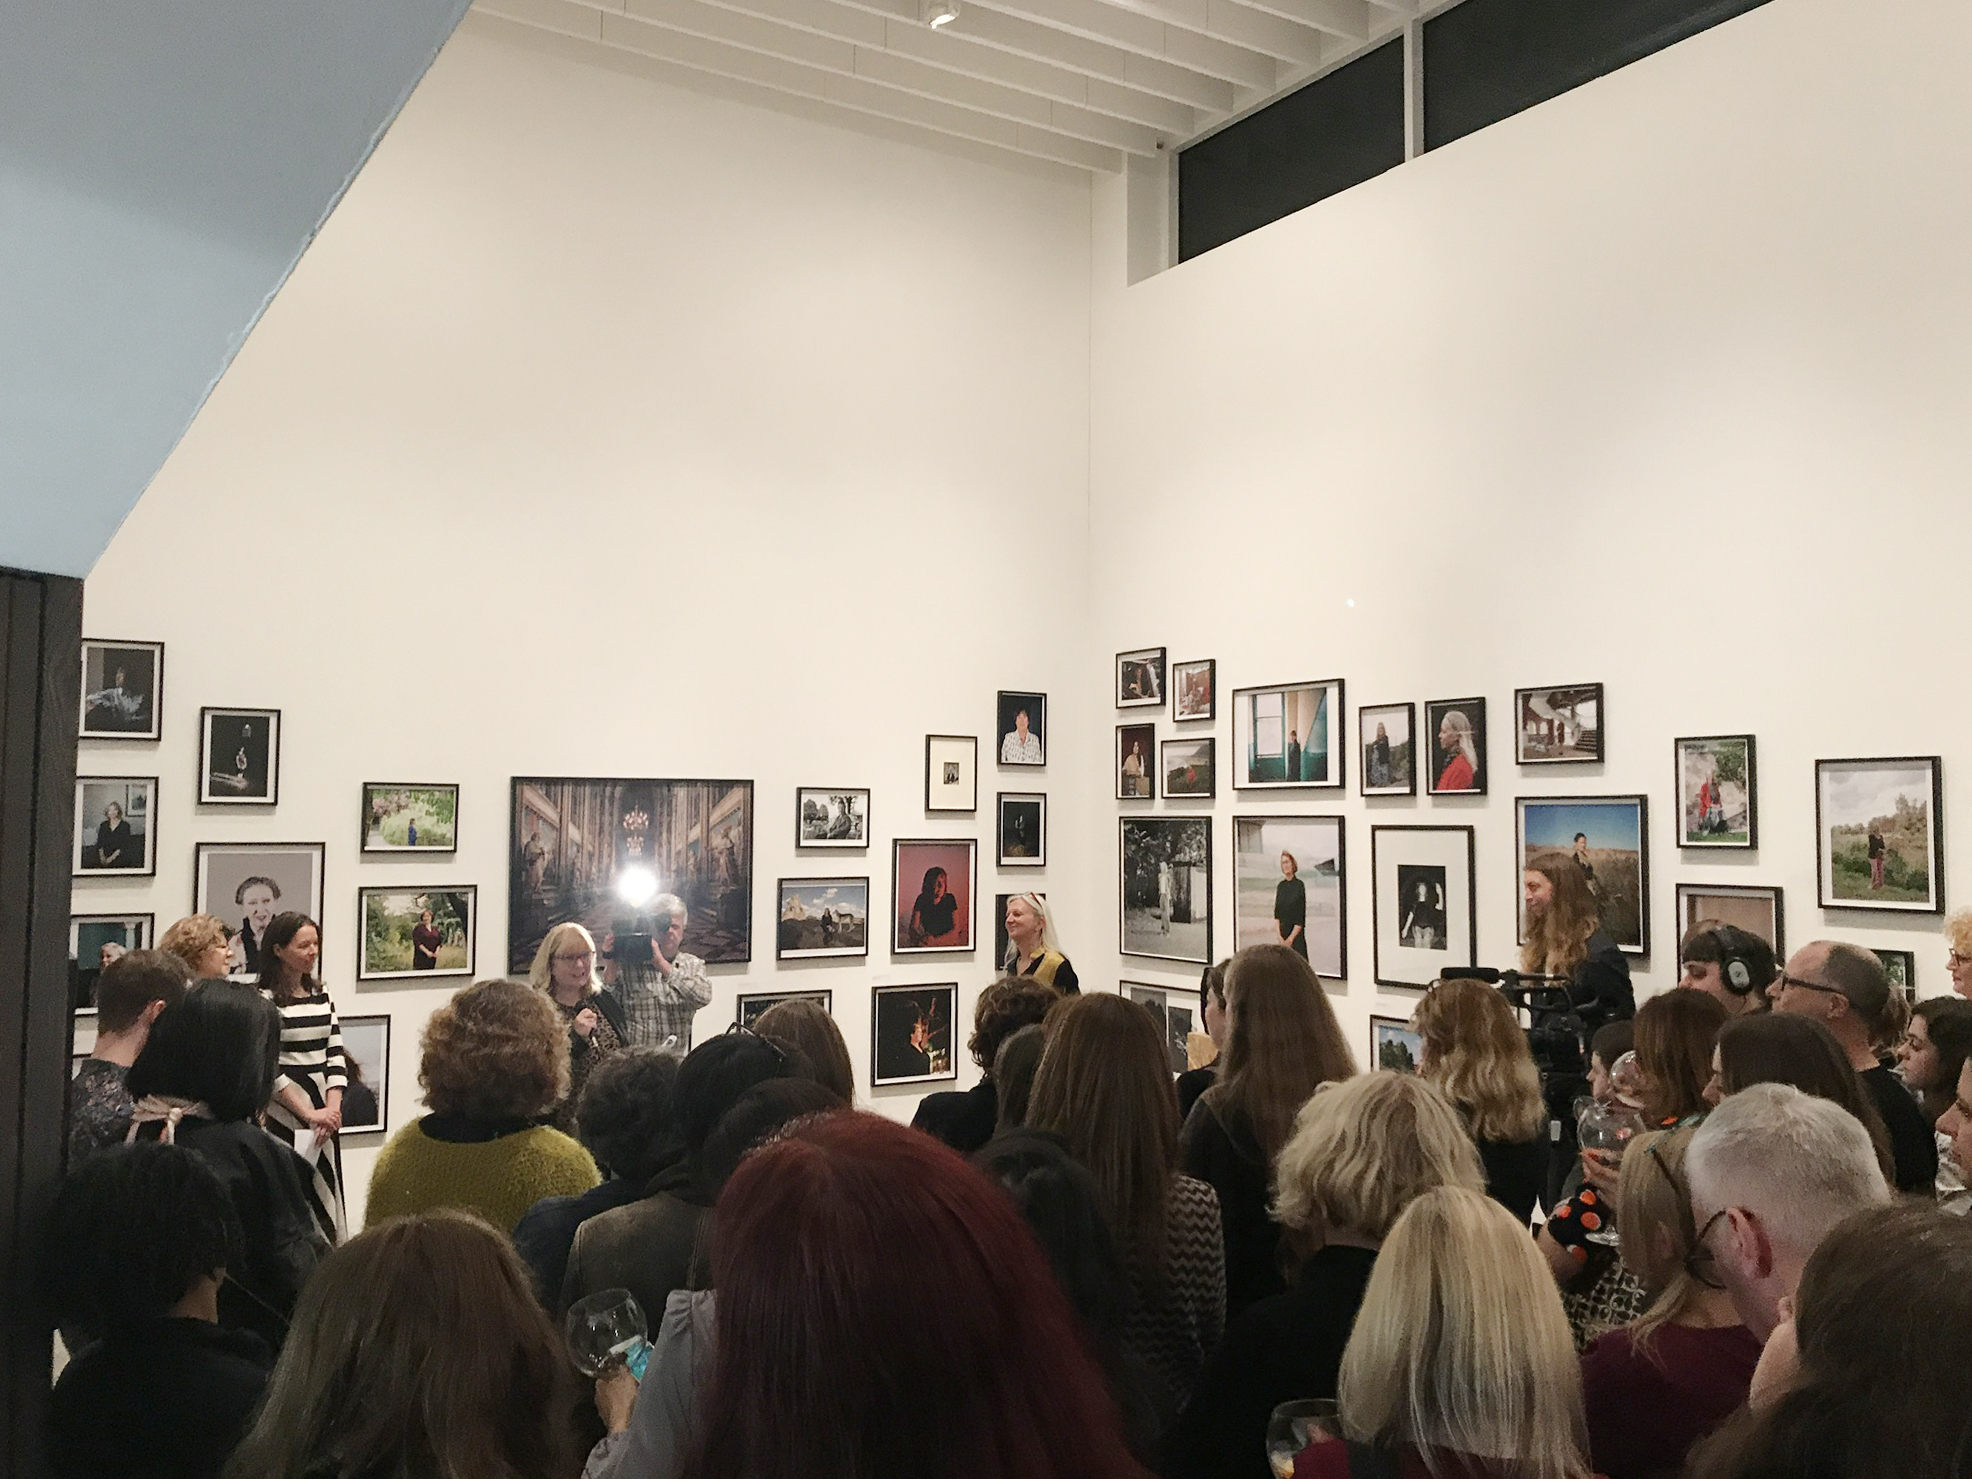 …..One of the most internationally recognised brand shows in 2018, featuring 209 of the most internationally renowned female photographers.  The show has gained immense national and international media coverage in the BJP (British Journal of Photography), The Guardian, The Telegraph, Vanity Fair, I-M Magazine, BBC news reports, a Sky Documentary and ITV news reports……   https://www.209women.co.uk